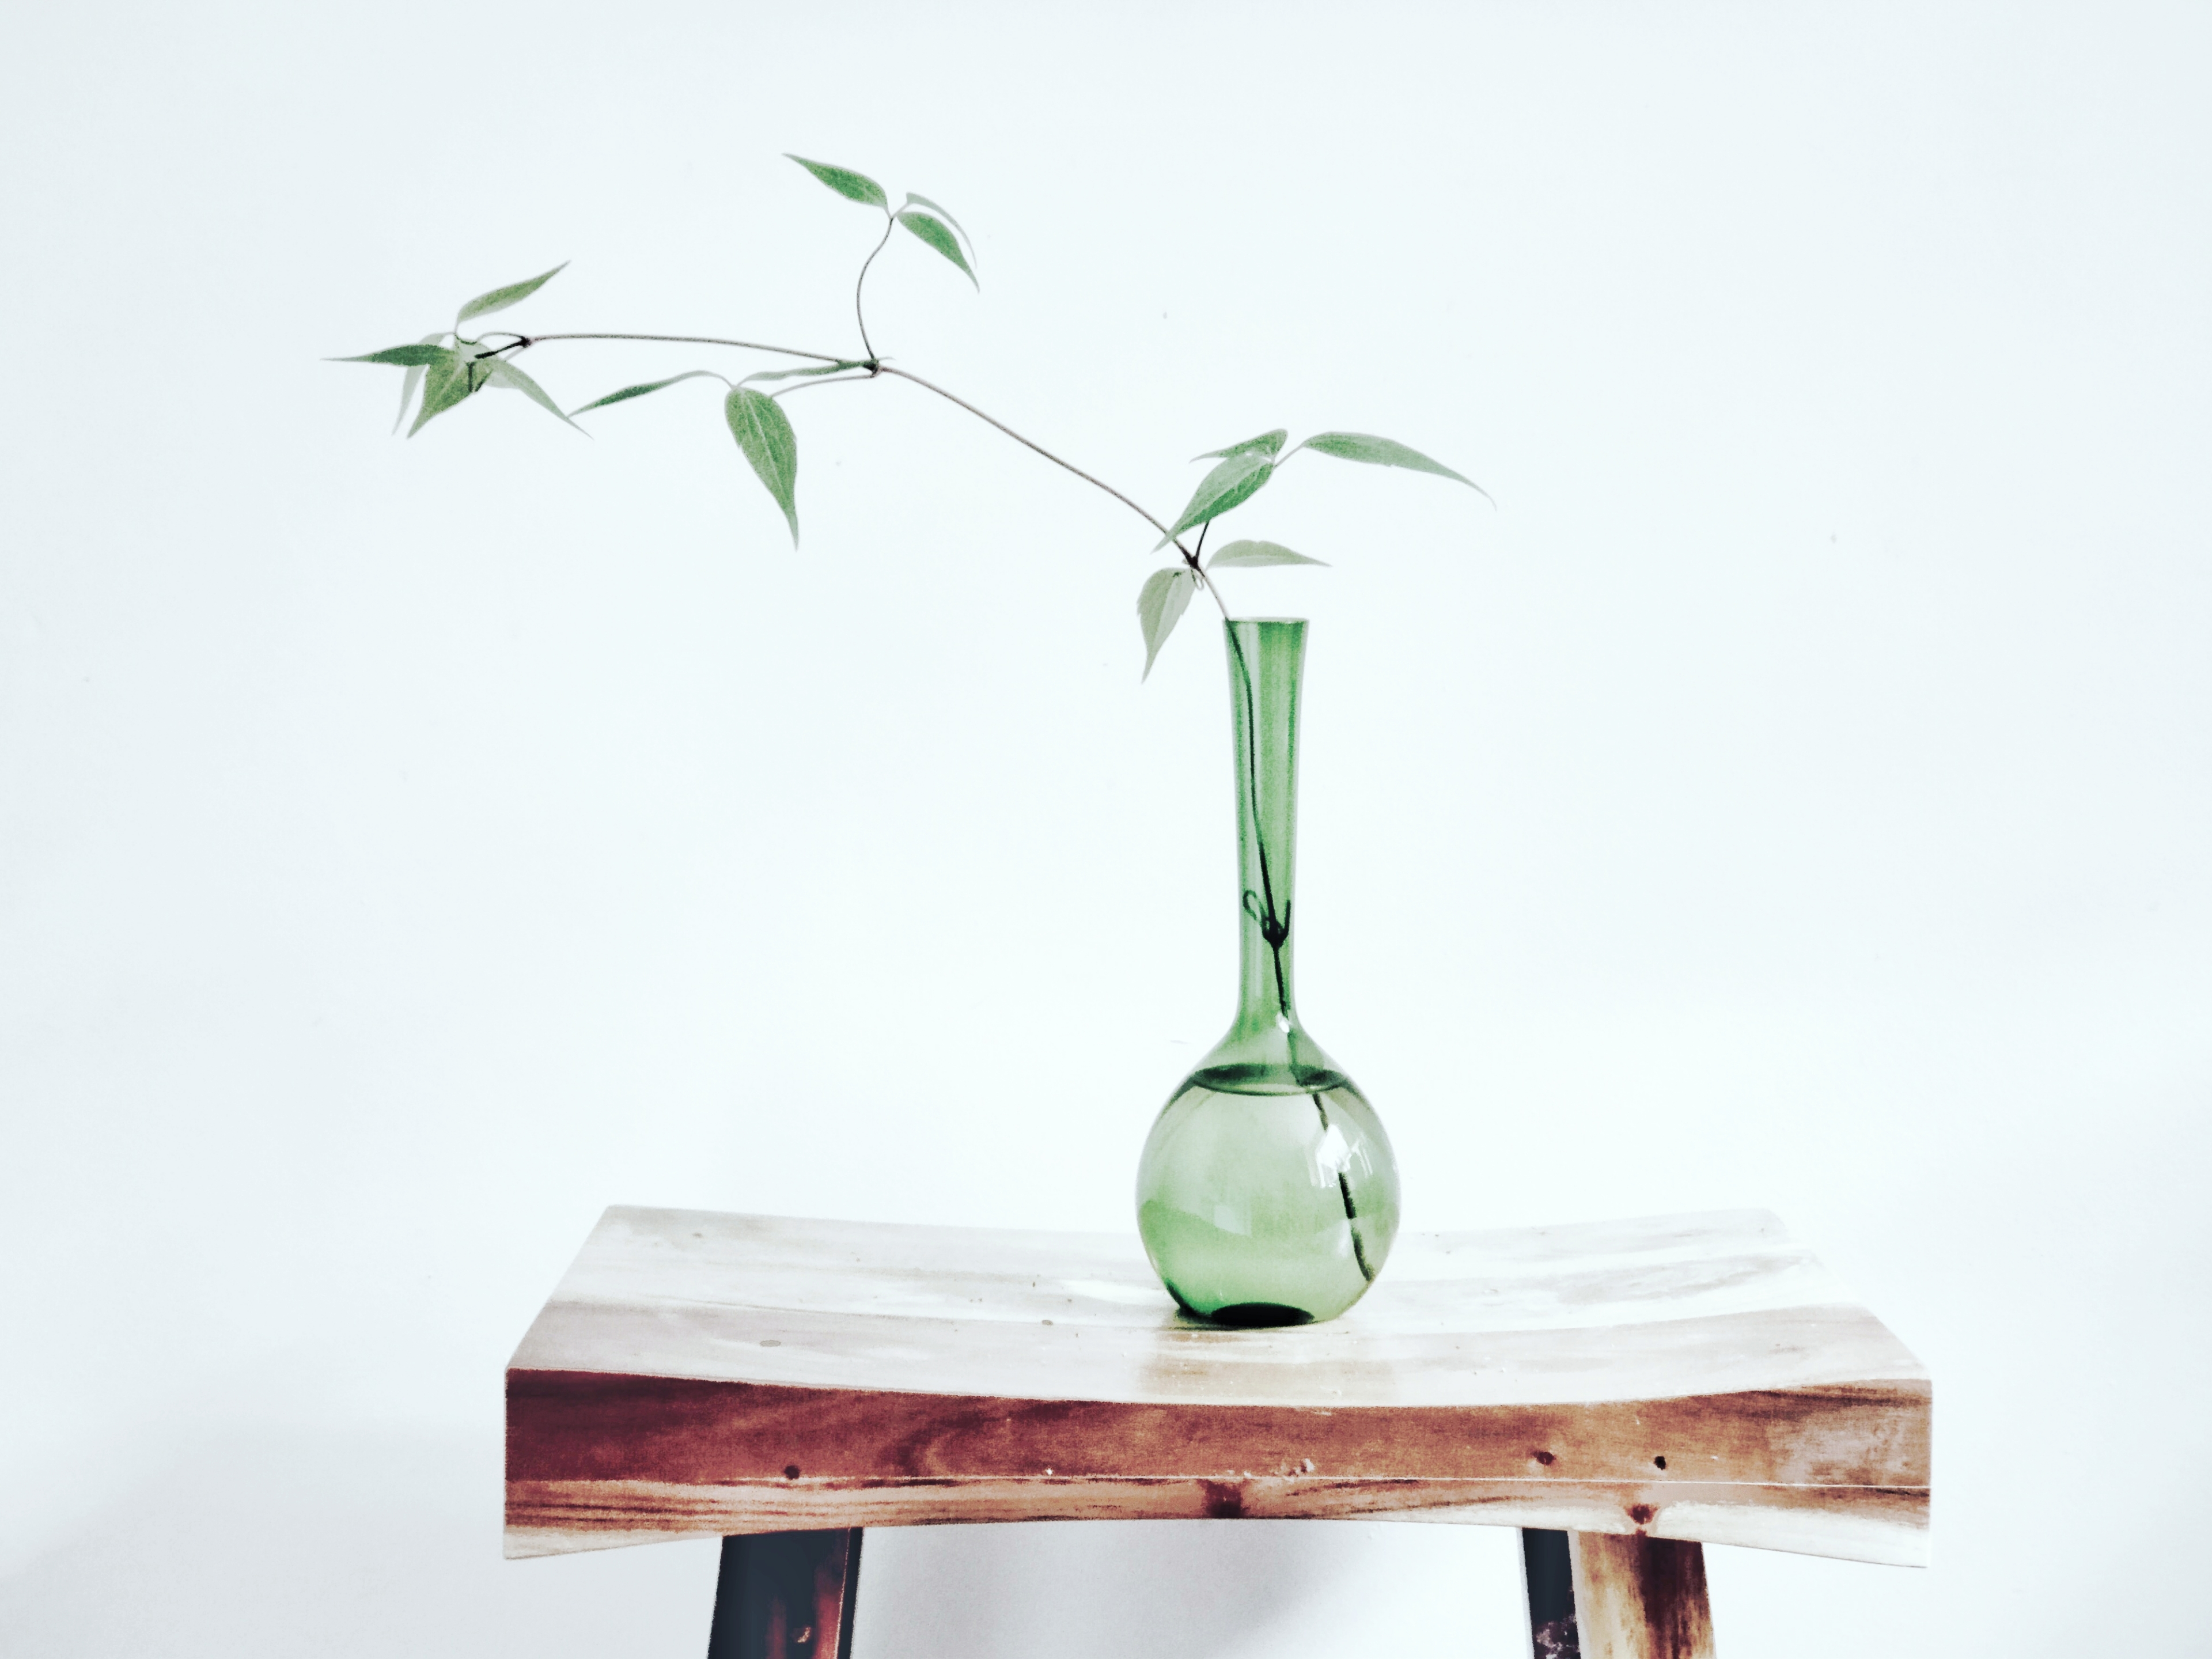 Minimalistic lifestyle, branches and green vases